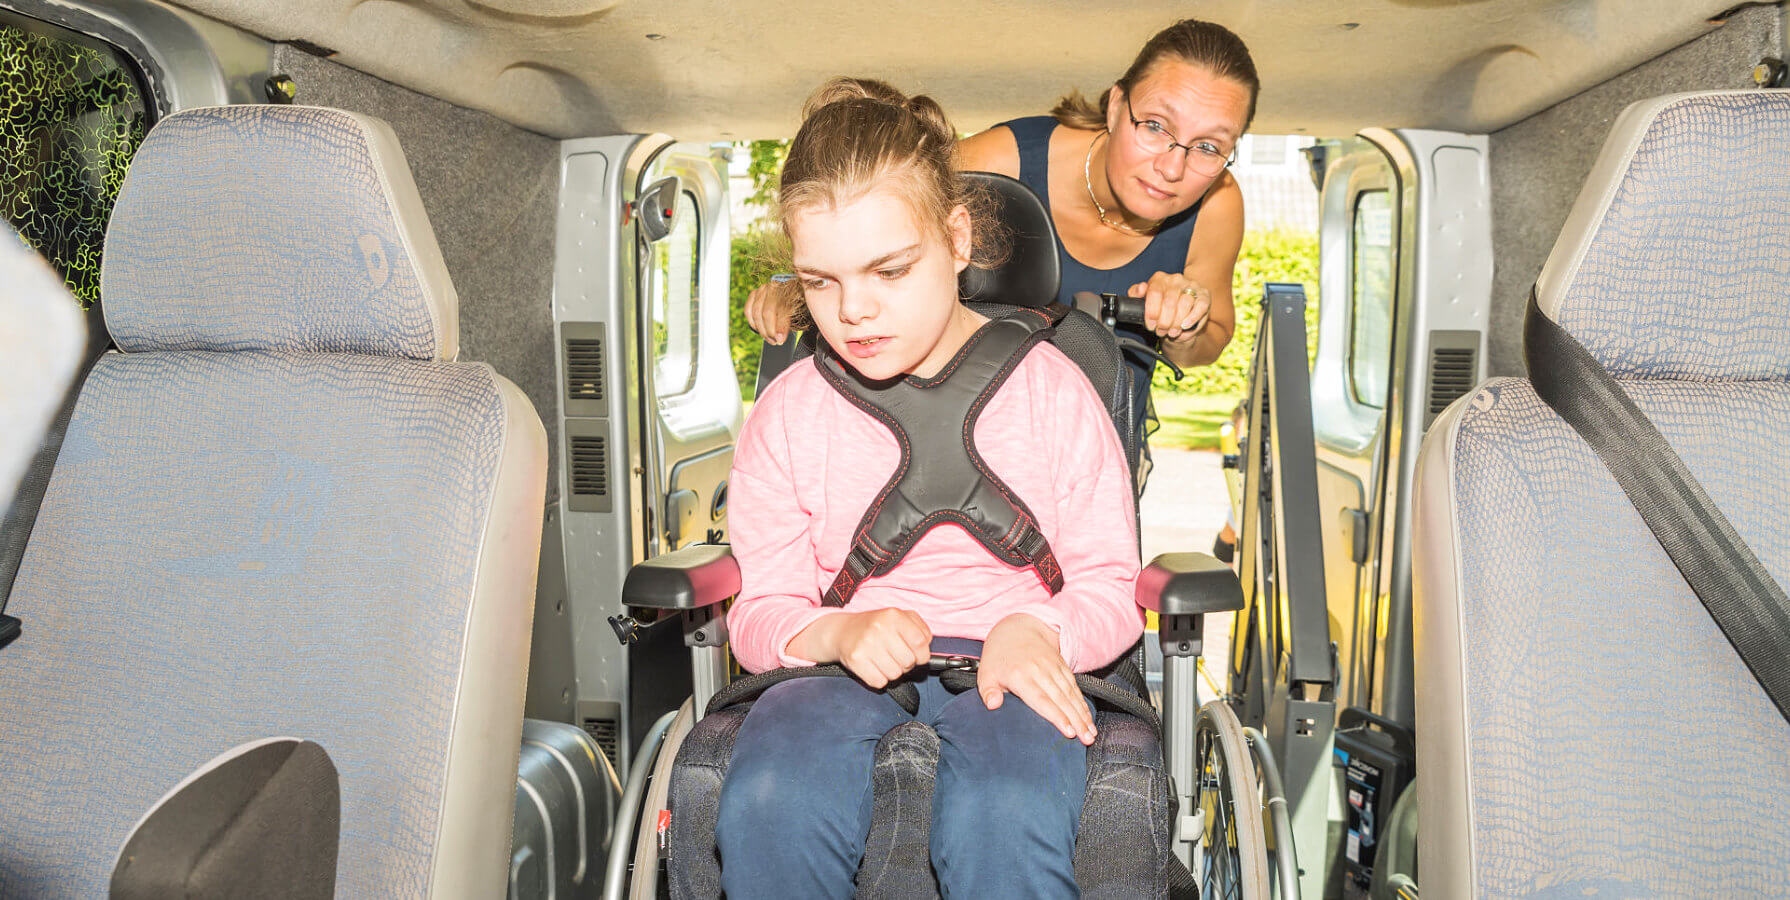 girl in a wheelchair together with a caregiver on a vehicle